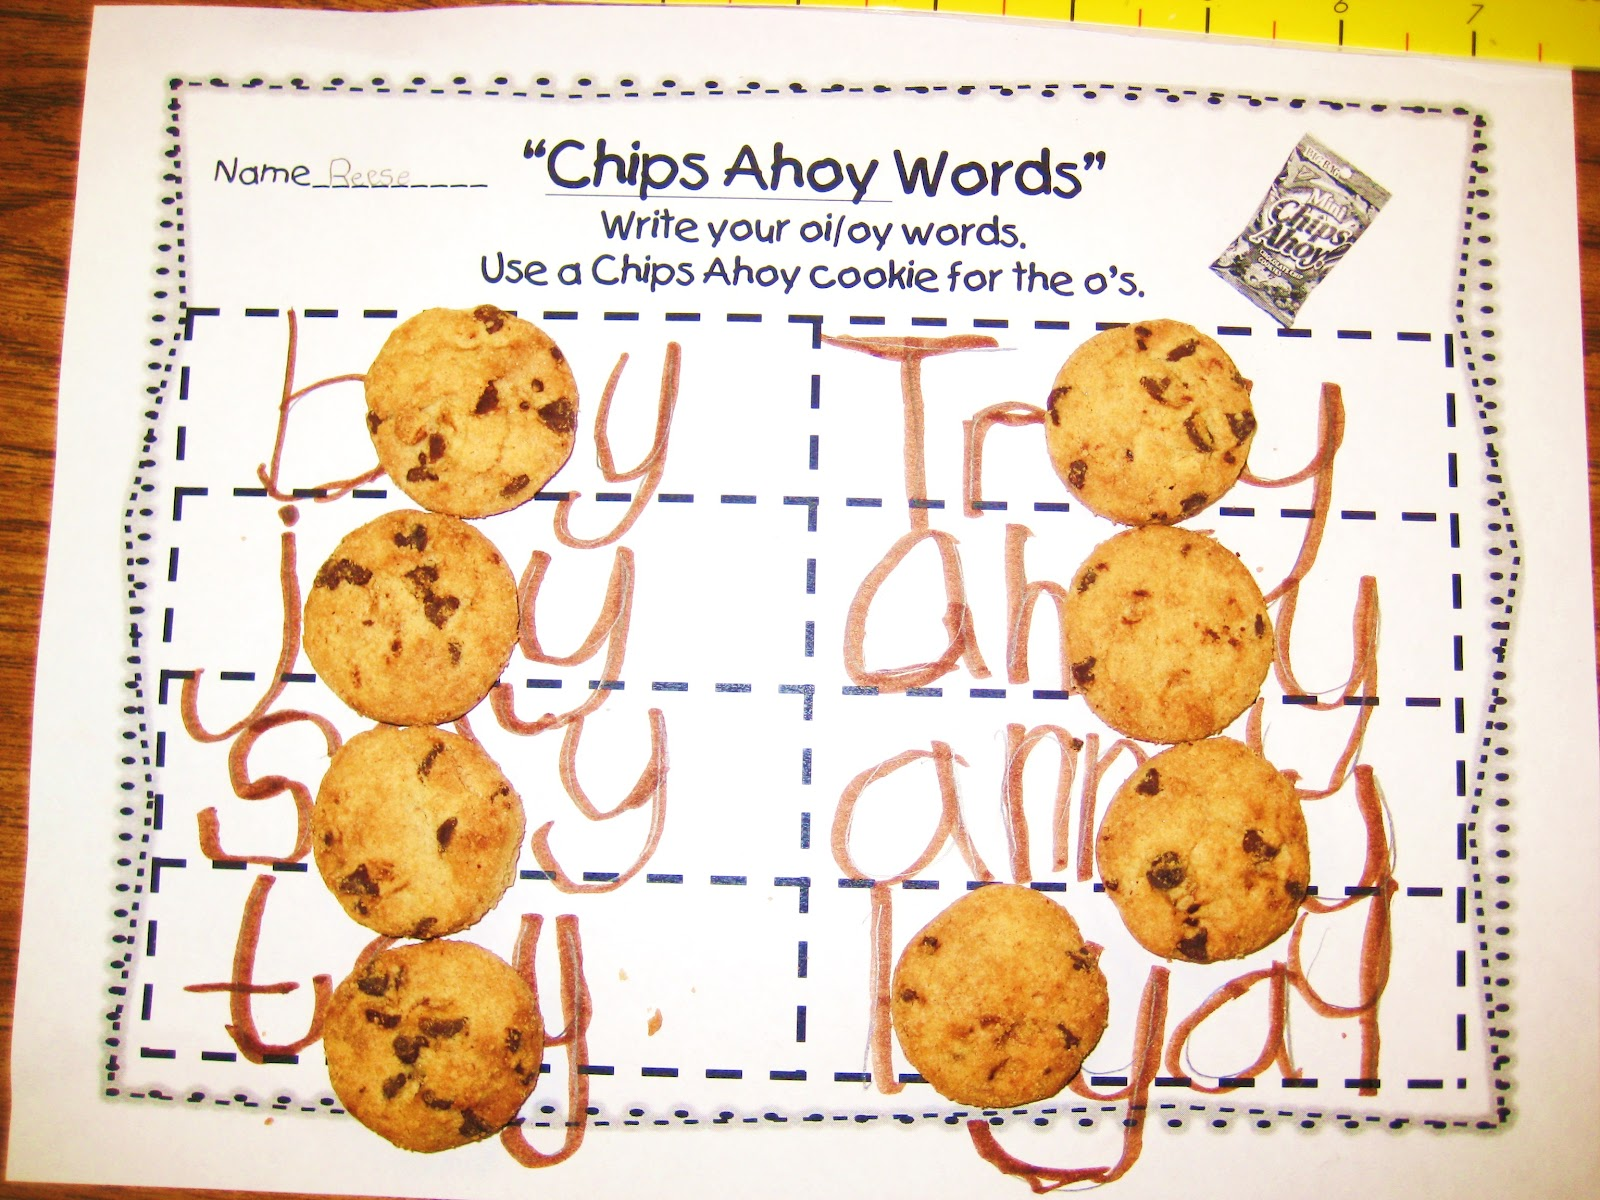 worksheet Words With Oi first grade wow chips ahoy wednesday april 11 2012